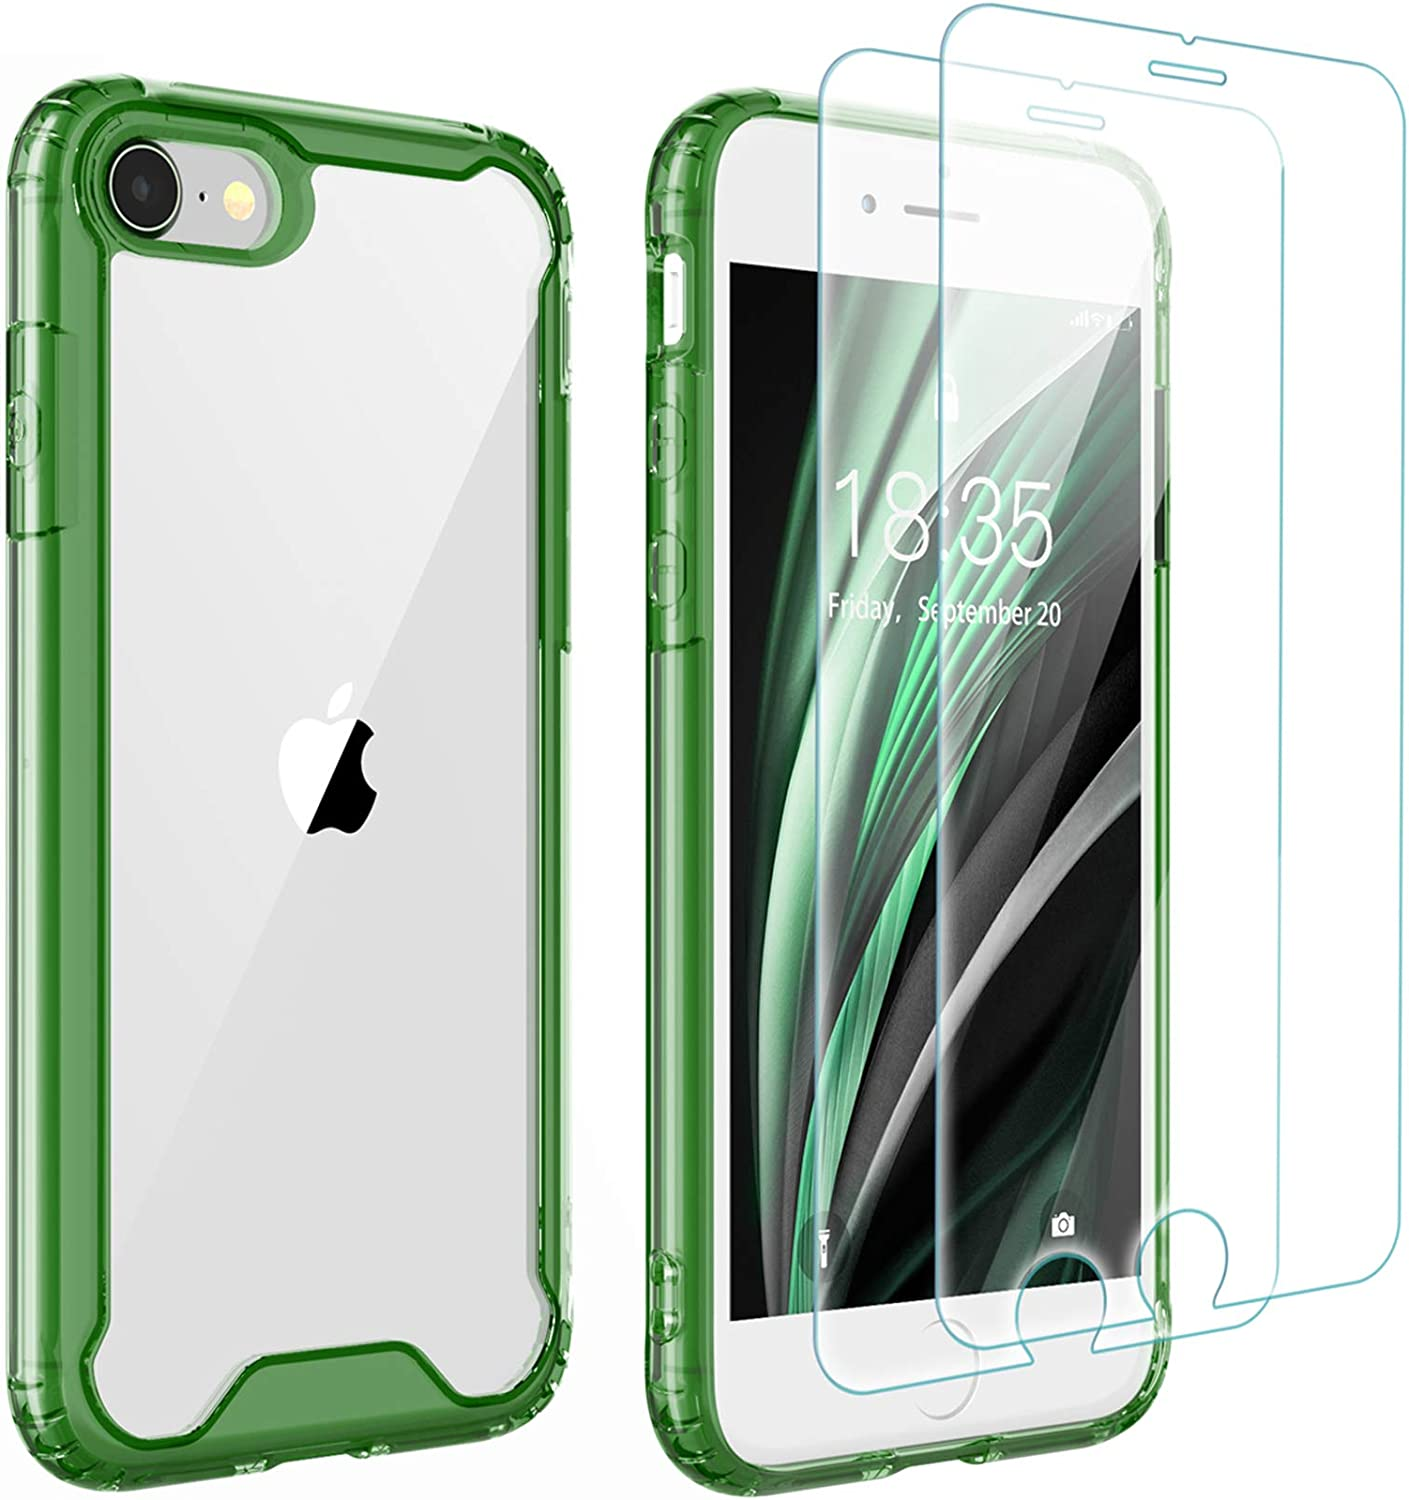 Singdo iPhone SE 2020 Case,iPhone 7/8 Case,with [2 xTempered Glass Screen Protector] Premium Clear Soft TPU + Hard PC Ultra-Clear Anti-Scratch Case for iPhone SE 2020/7/8 4.7 inch (Dark Green)